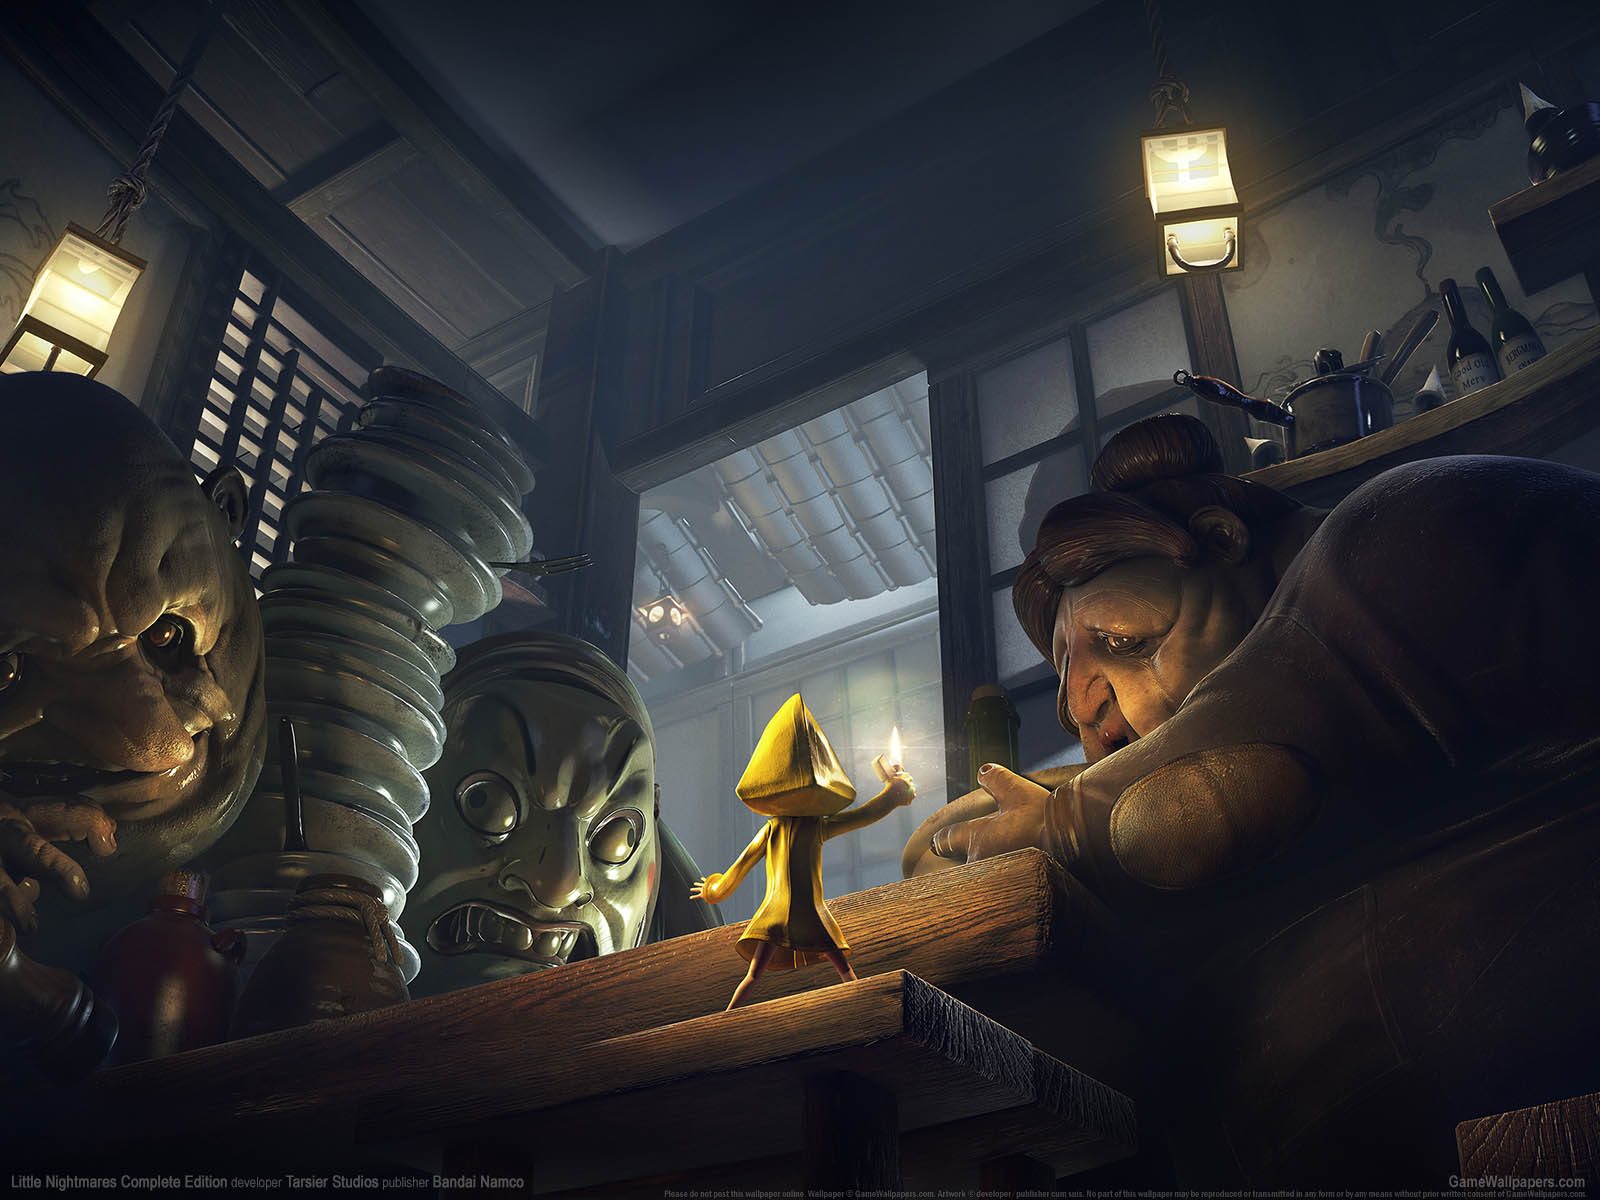 Little Nightmares Complete Editionνmmer=01 achtergrond  1600x1200